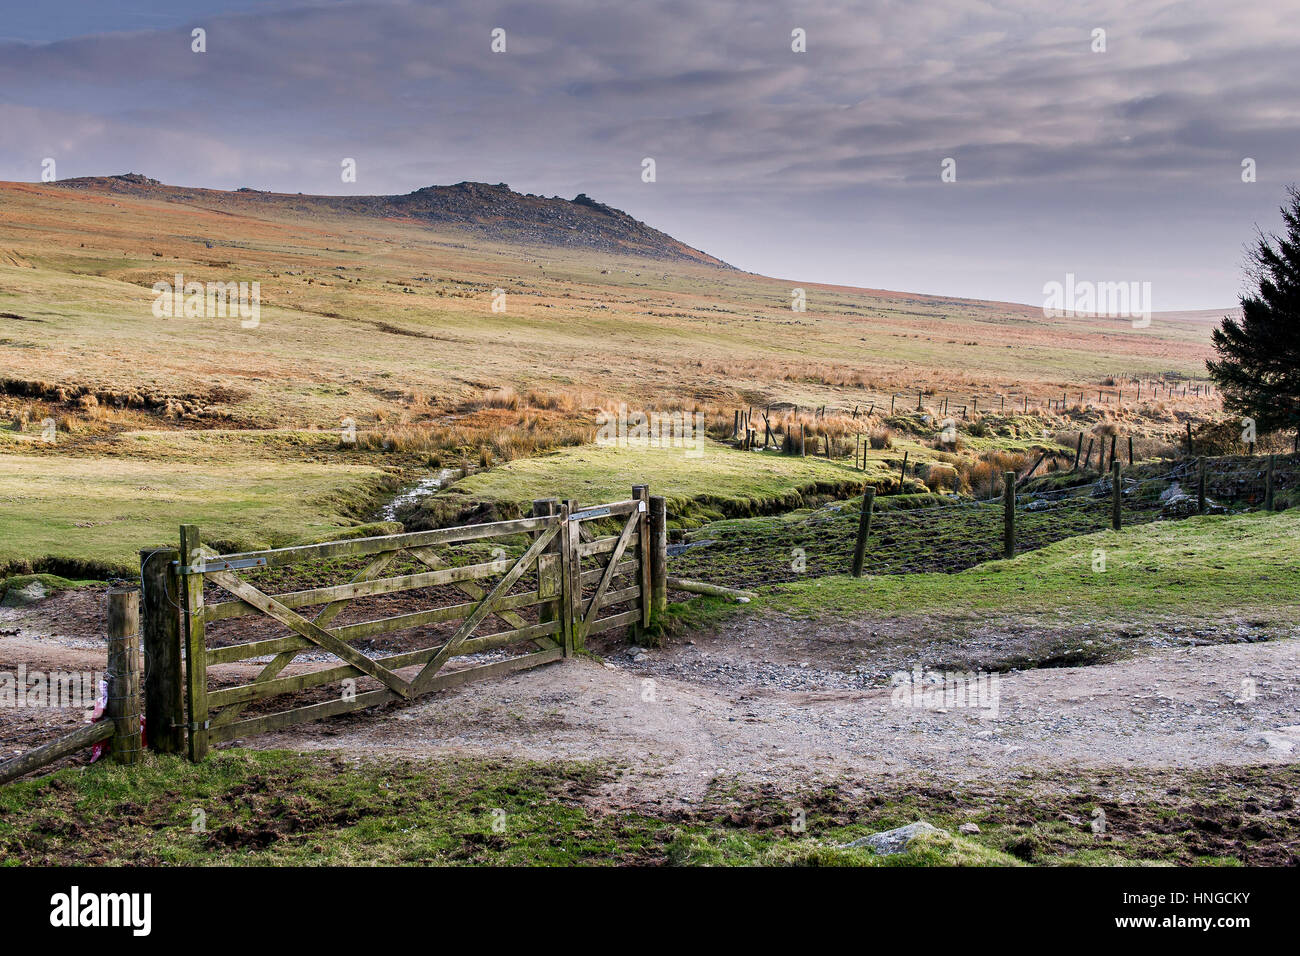 A wooden gate in a fence on Rough Tor, designated as an area of Outstanding Natural Beauty on Bodmin Moor in Cornwall. - Stock Image